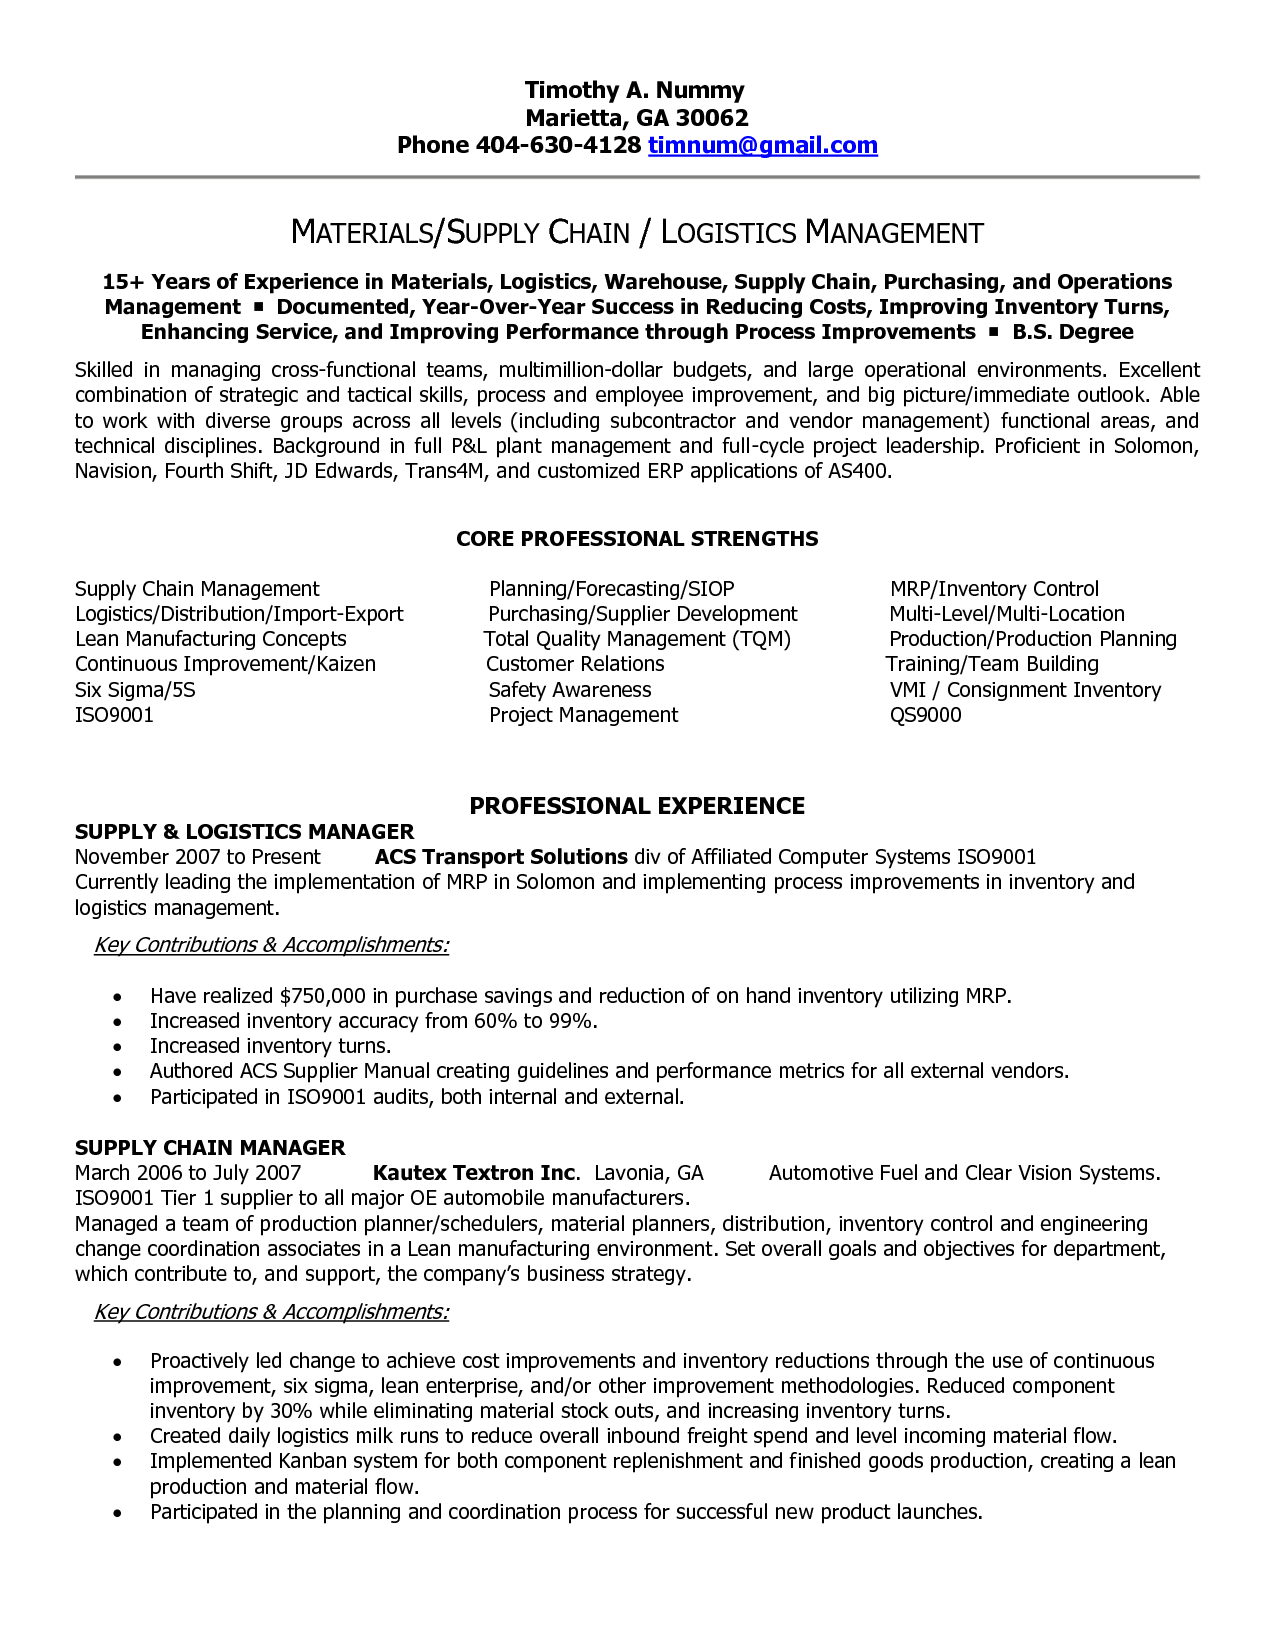 Supply Chain Management Resume Supply Chain Resume Templates  Supply Chain Manager In Atlanta Ga